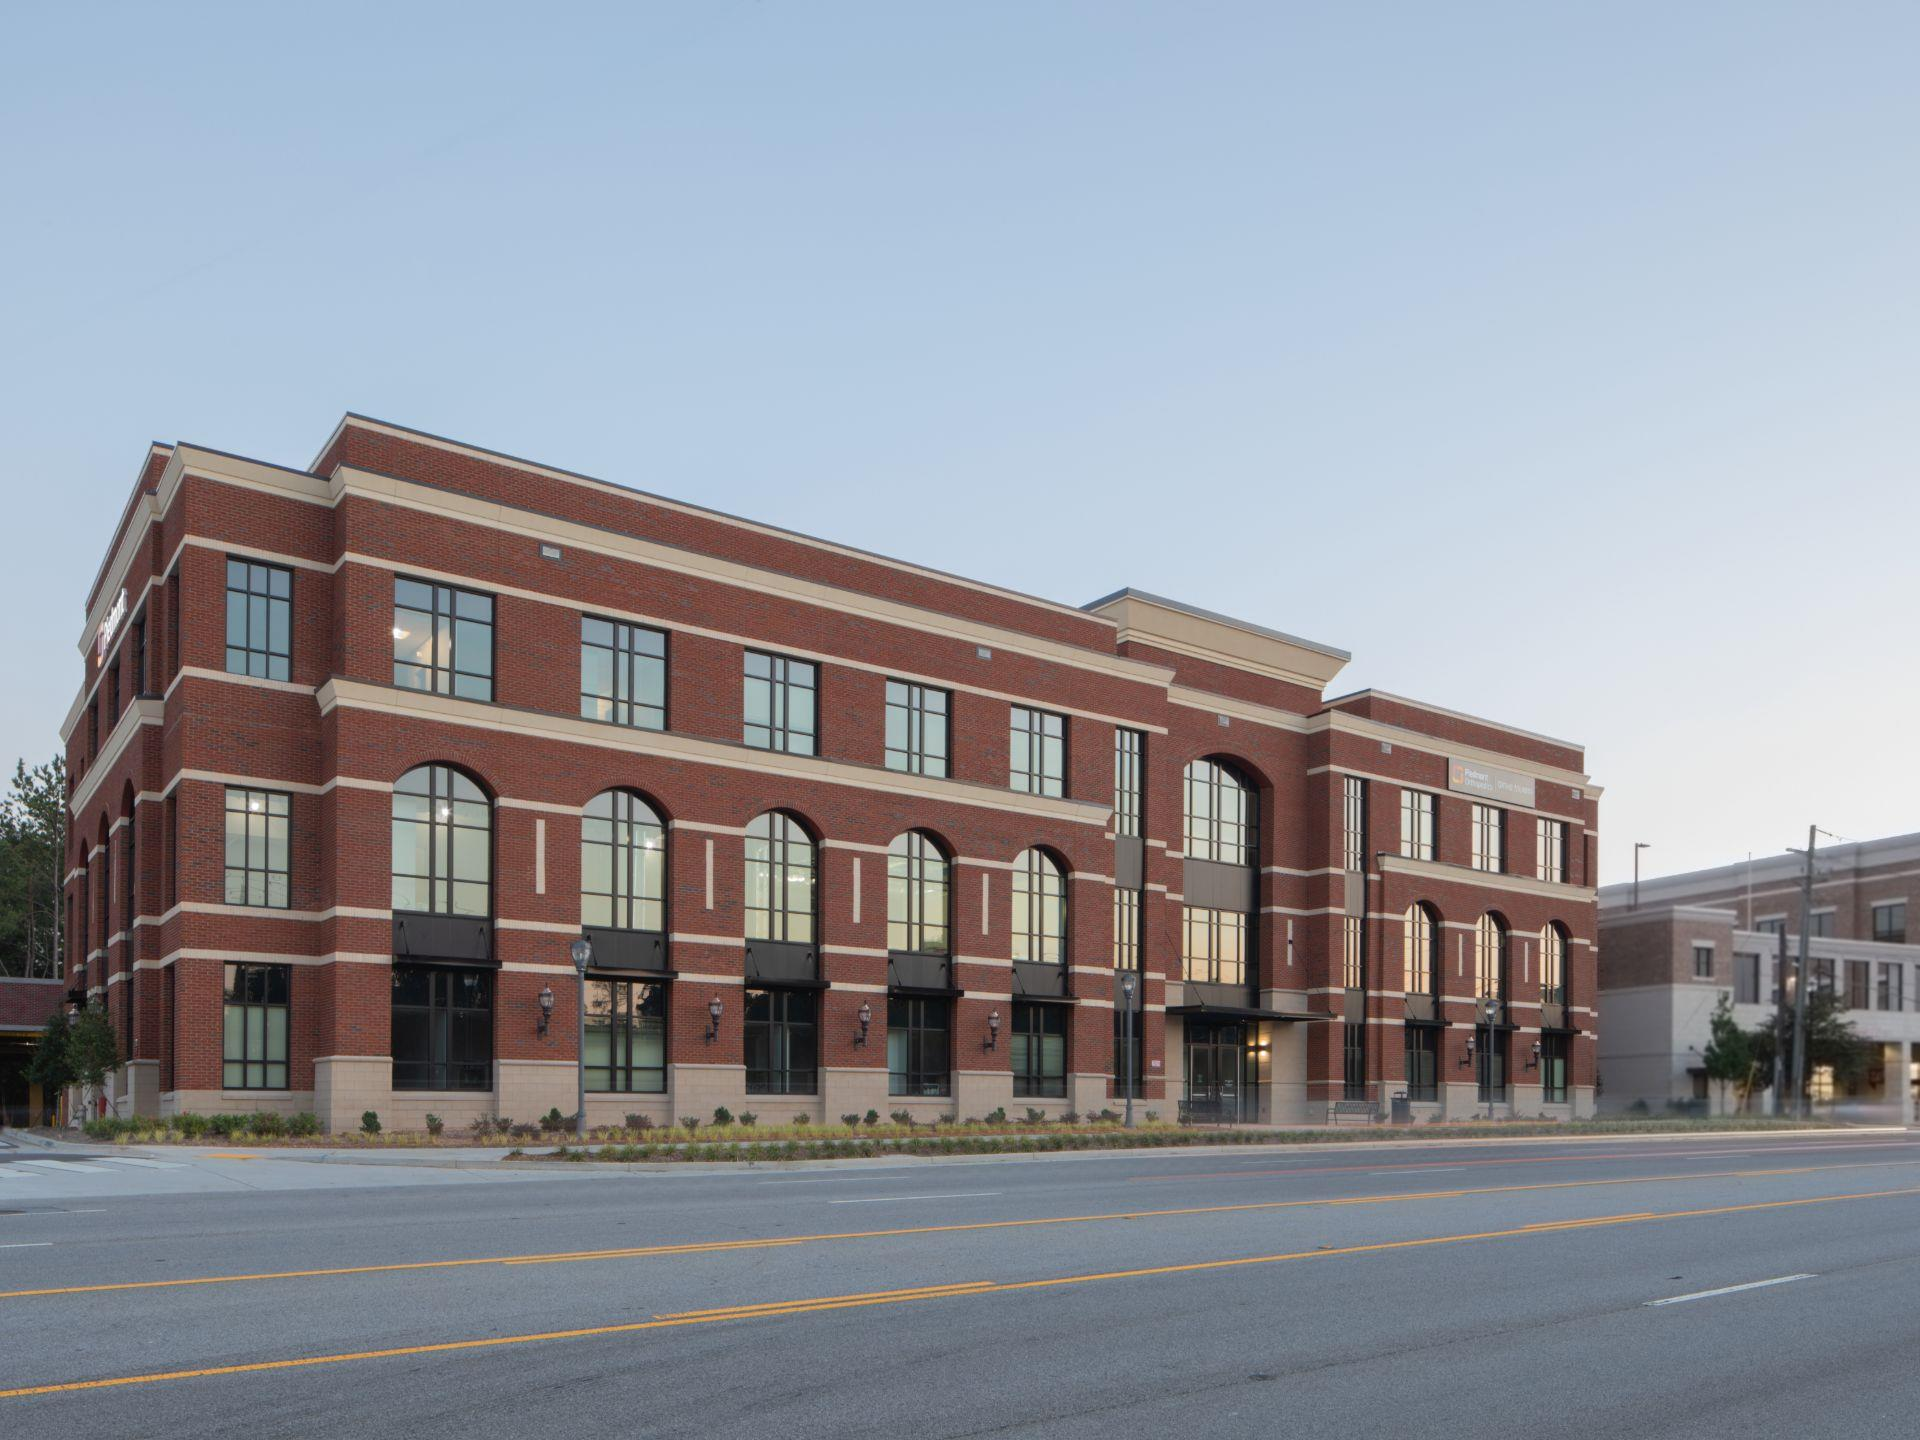 3-story brick building with arched windows on 2nd level.